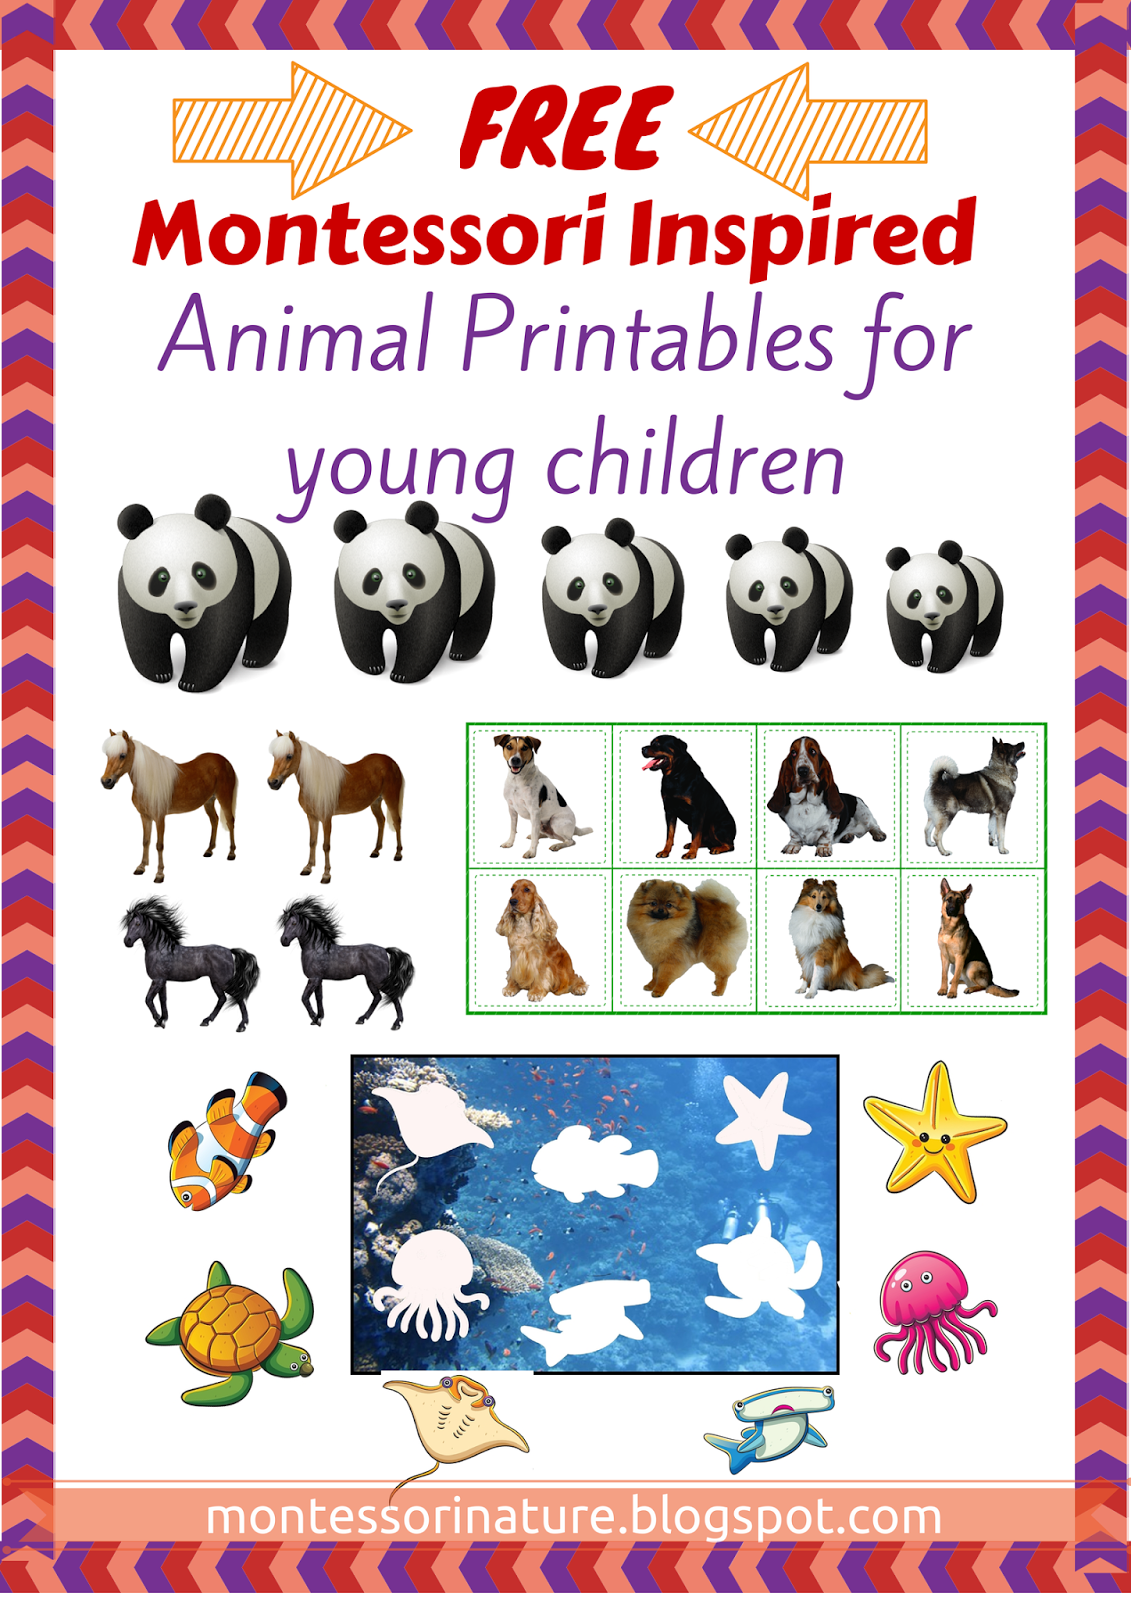 Montessori Nature Montessori Printables